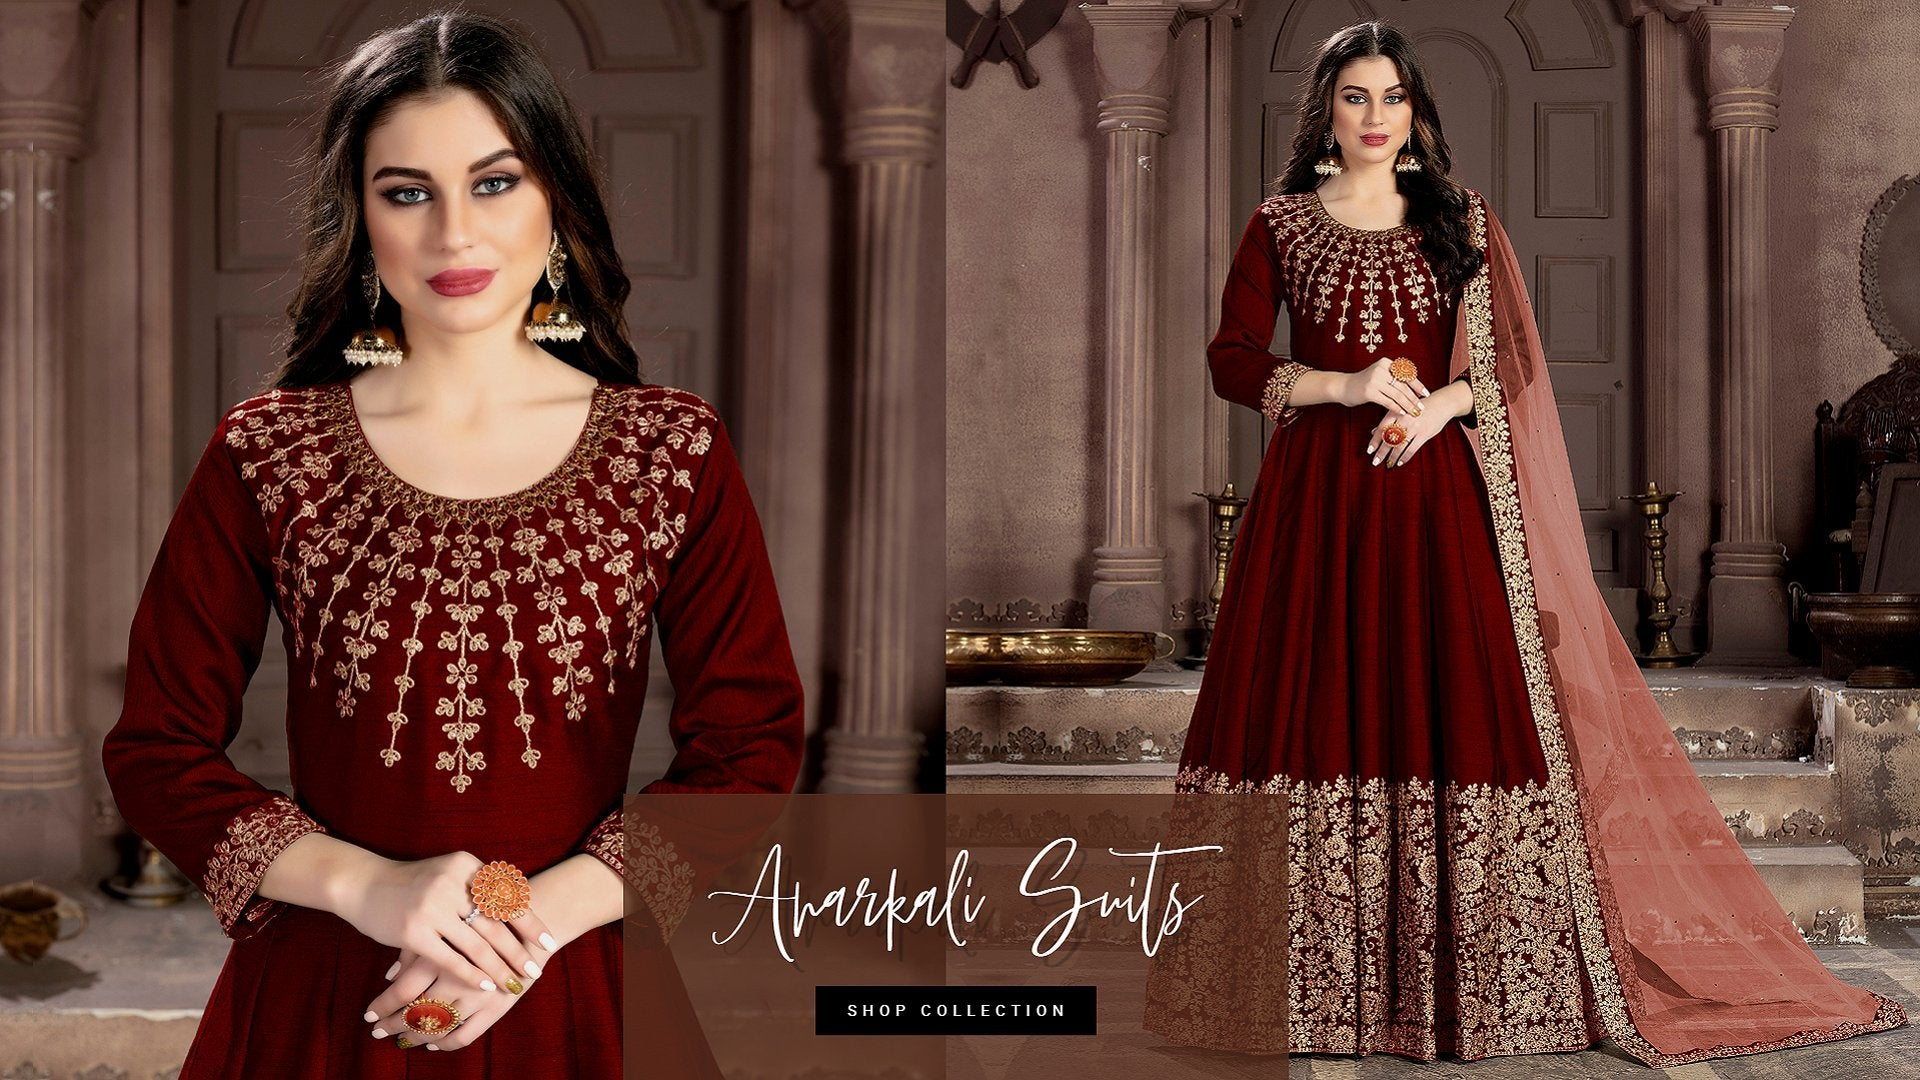 Anarkali Suits - Saira's Boutique